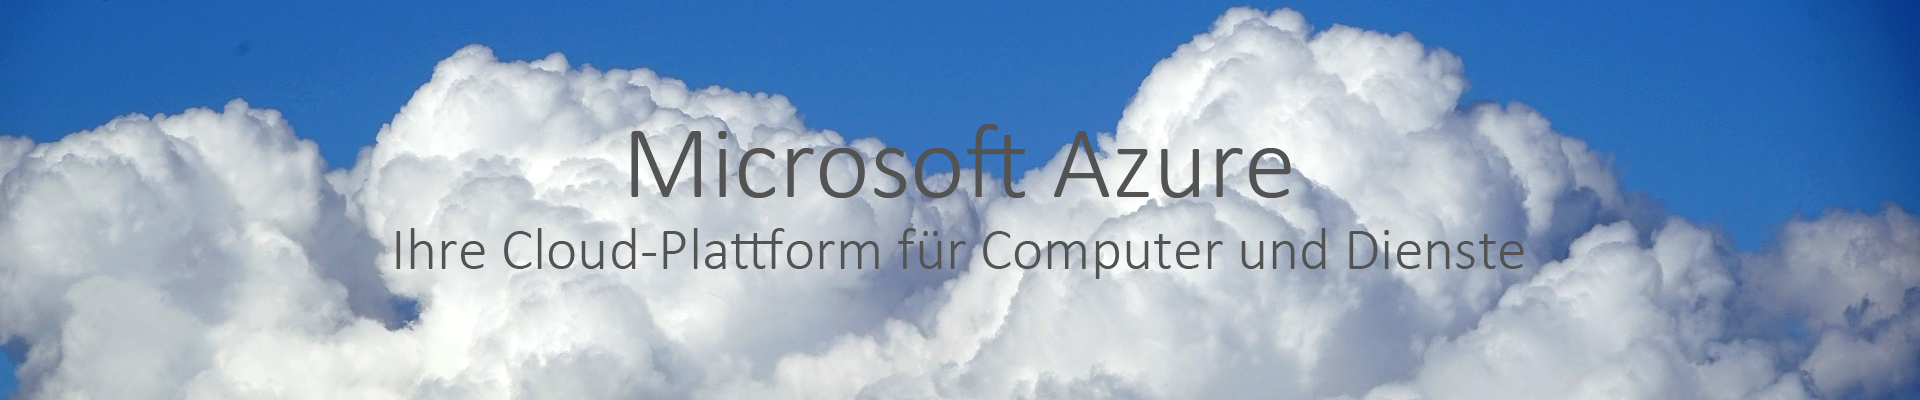 Ammann IT Services GmbH | Microsoft Azure